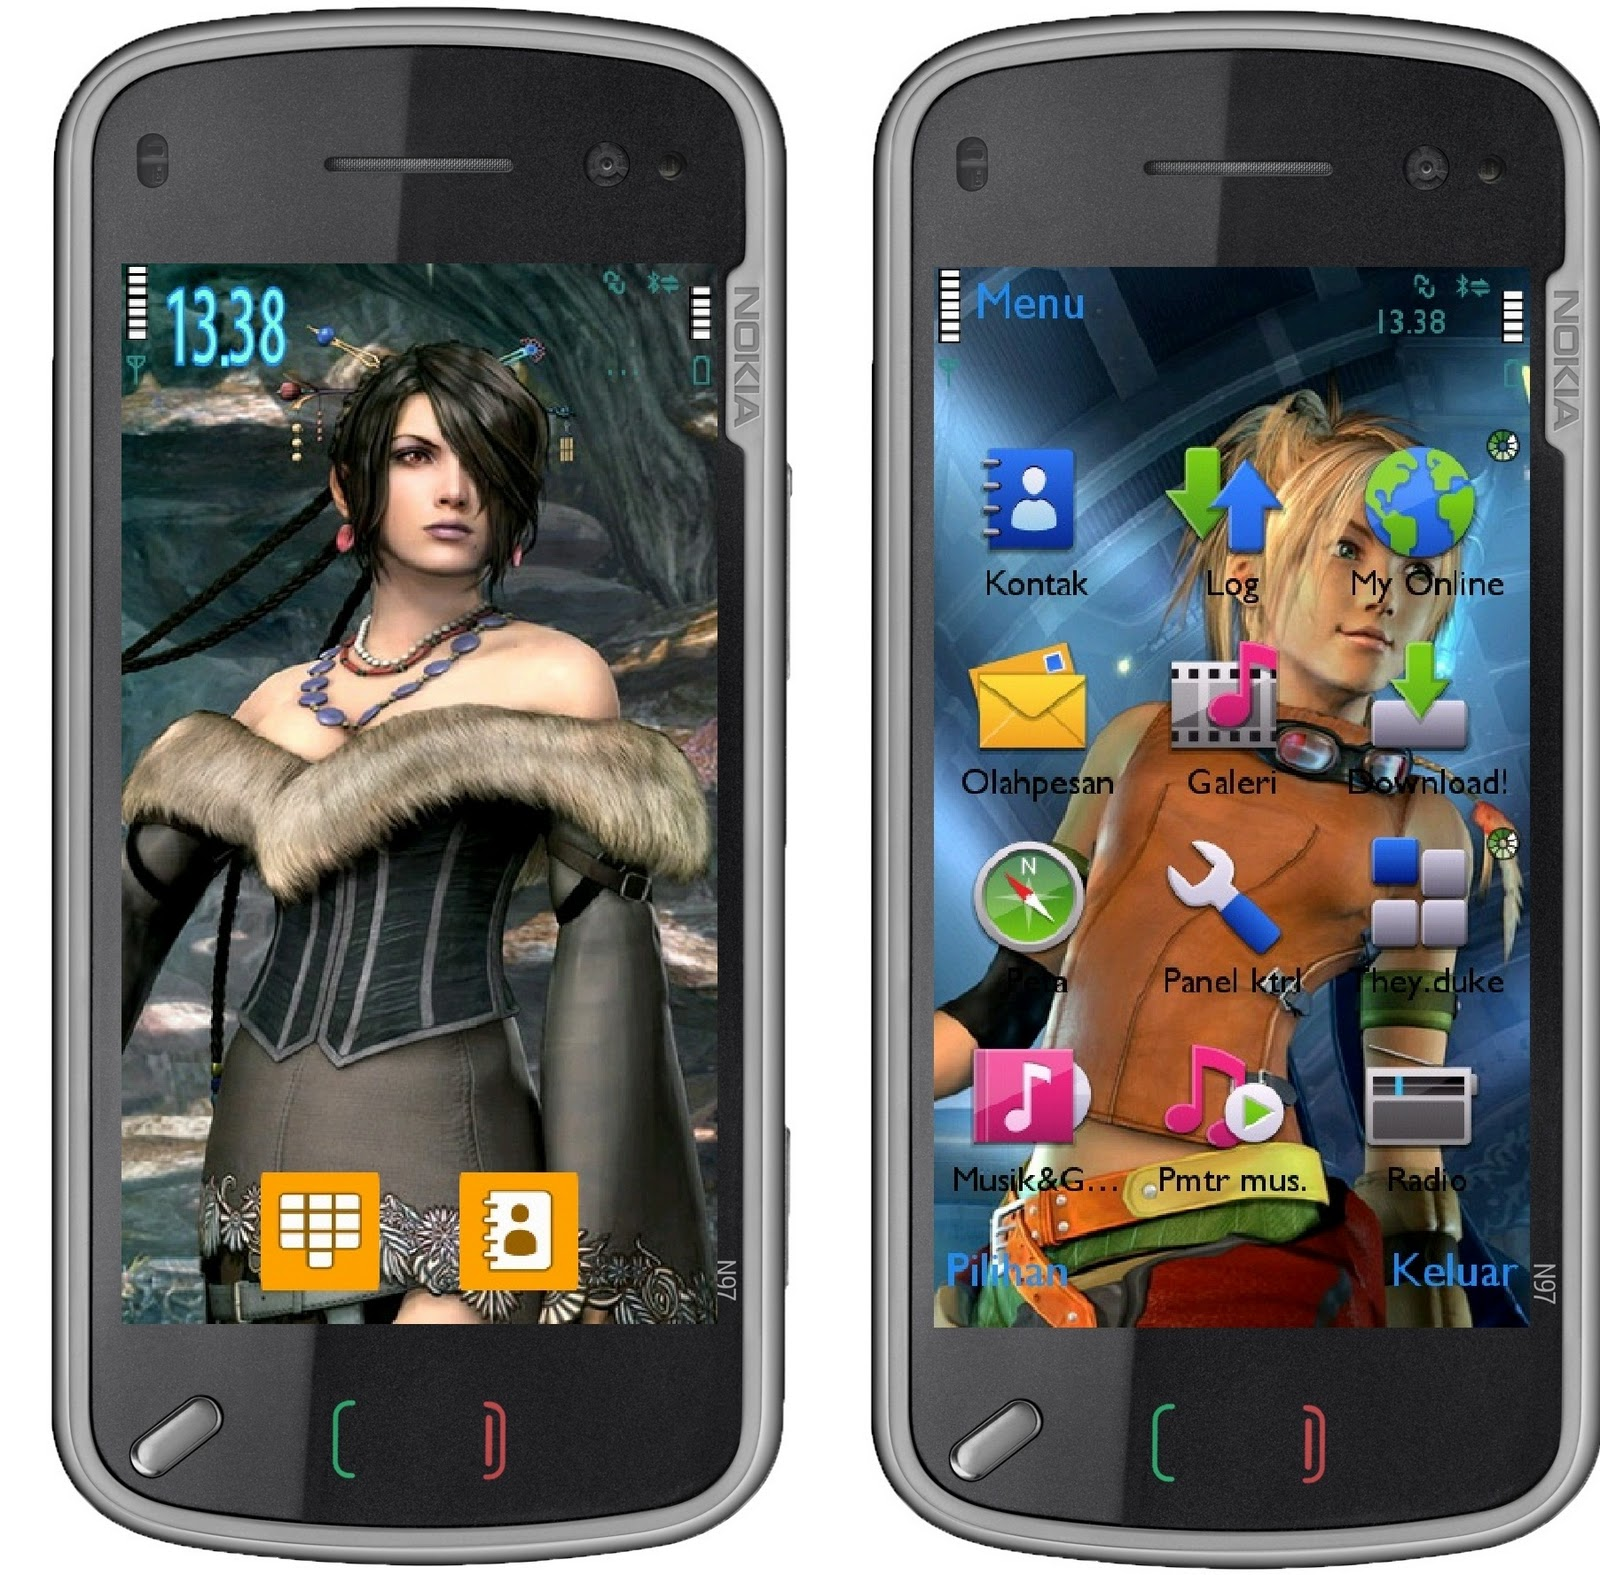 Alone Girl Wallpaper Mobile9 Pic New Posts Emo Wallpapers For Nokia 5233